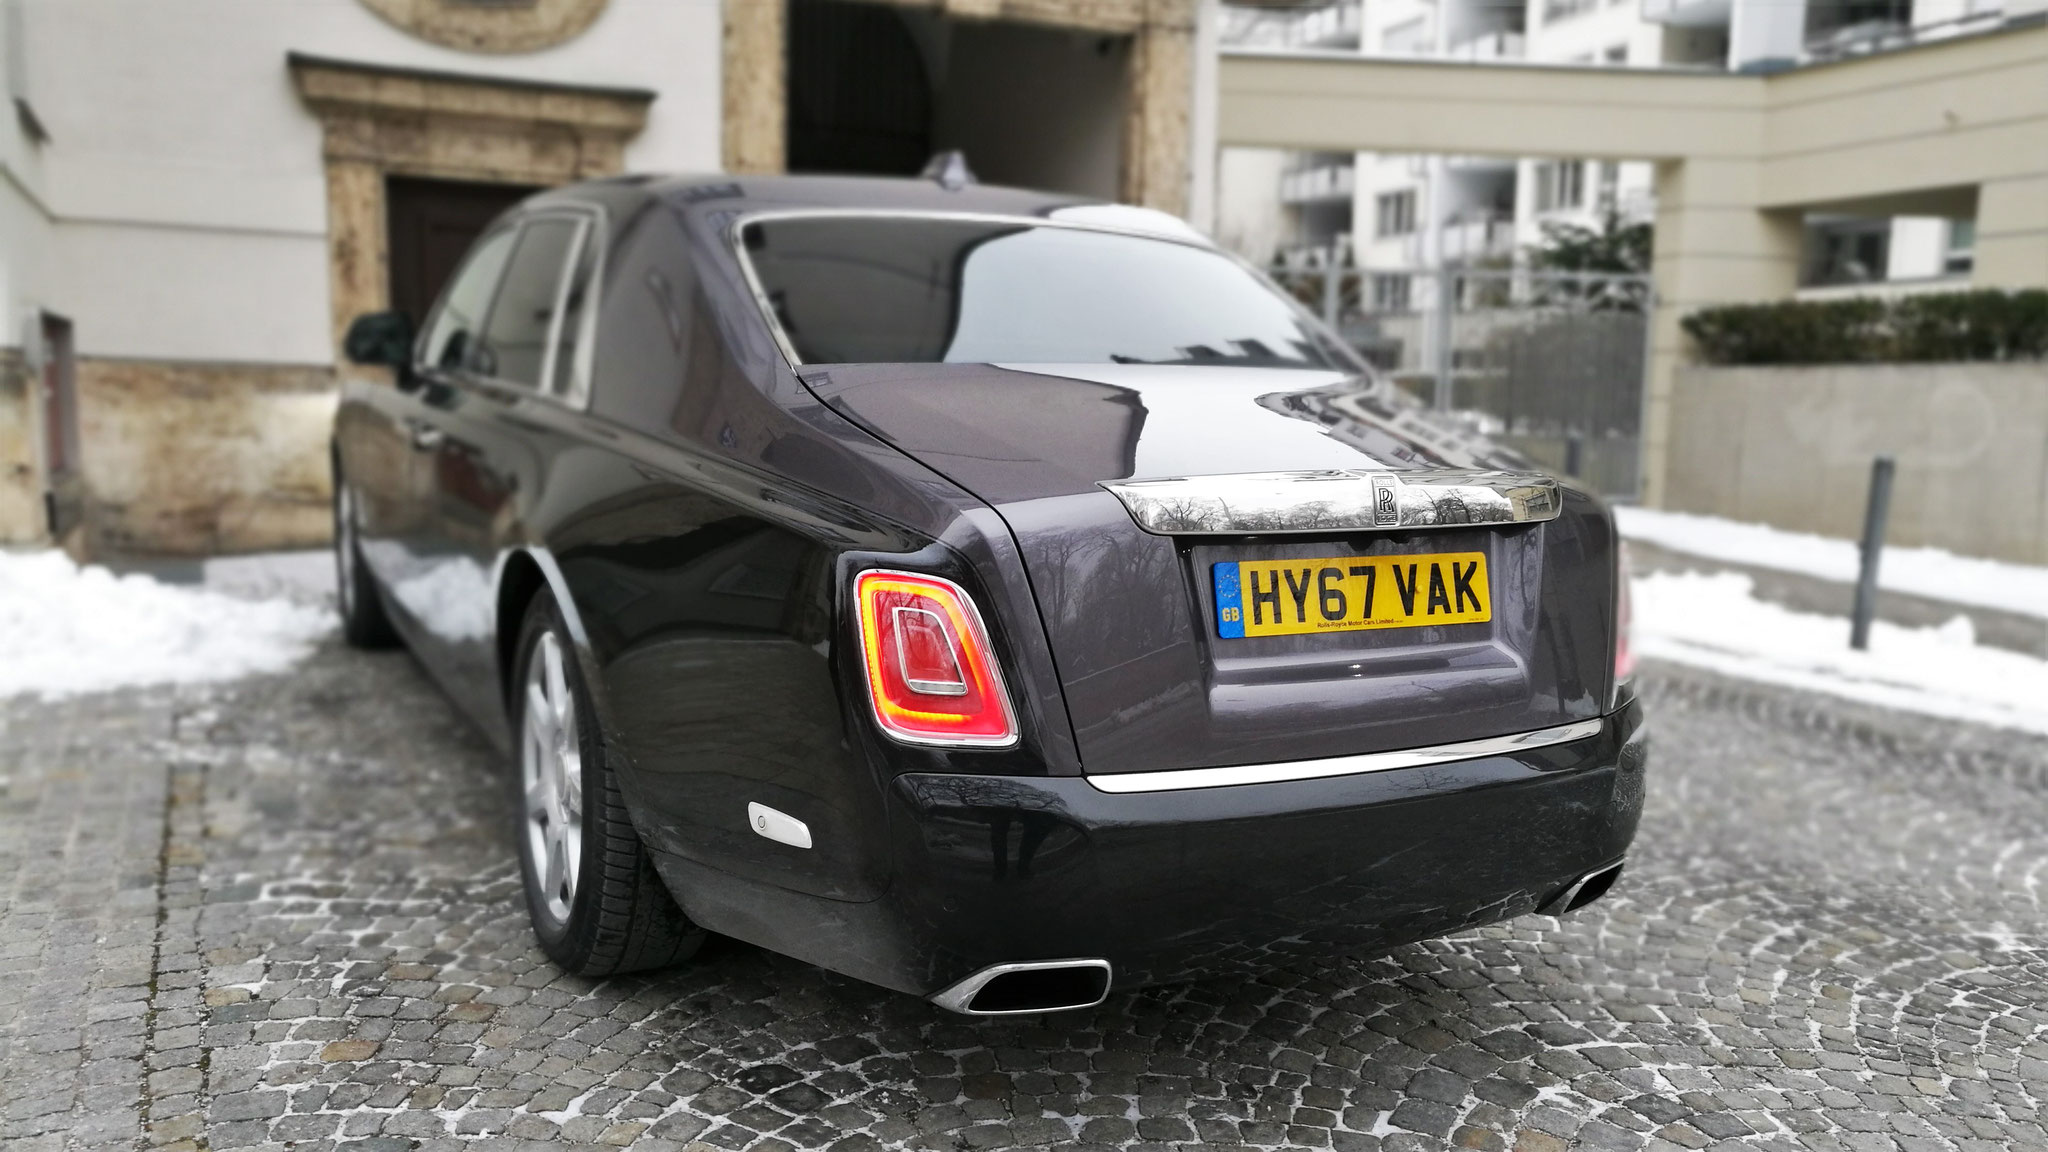 Rolls Royce Phantom - HY67-VAK (GB)